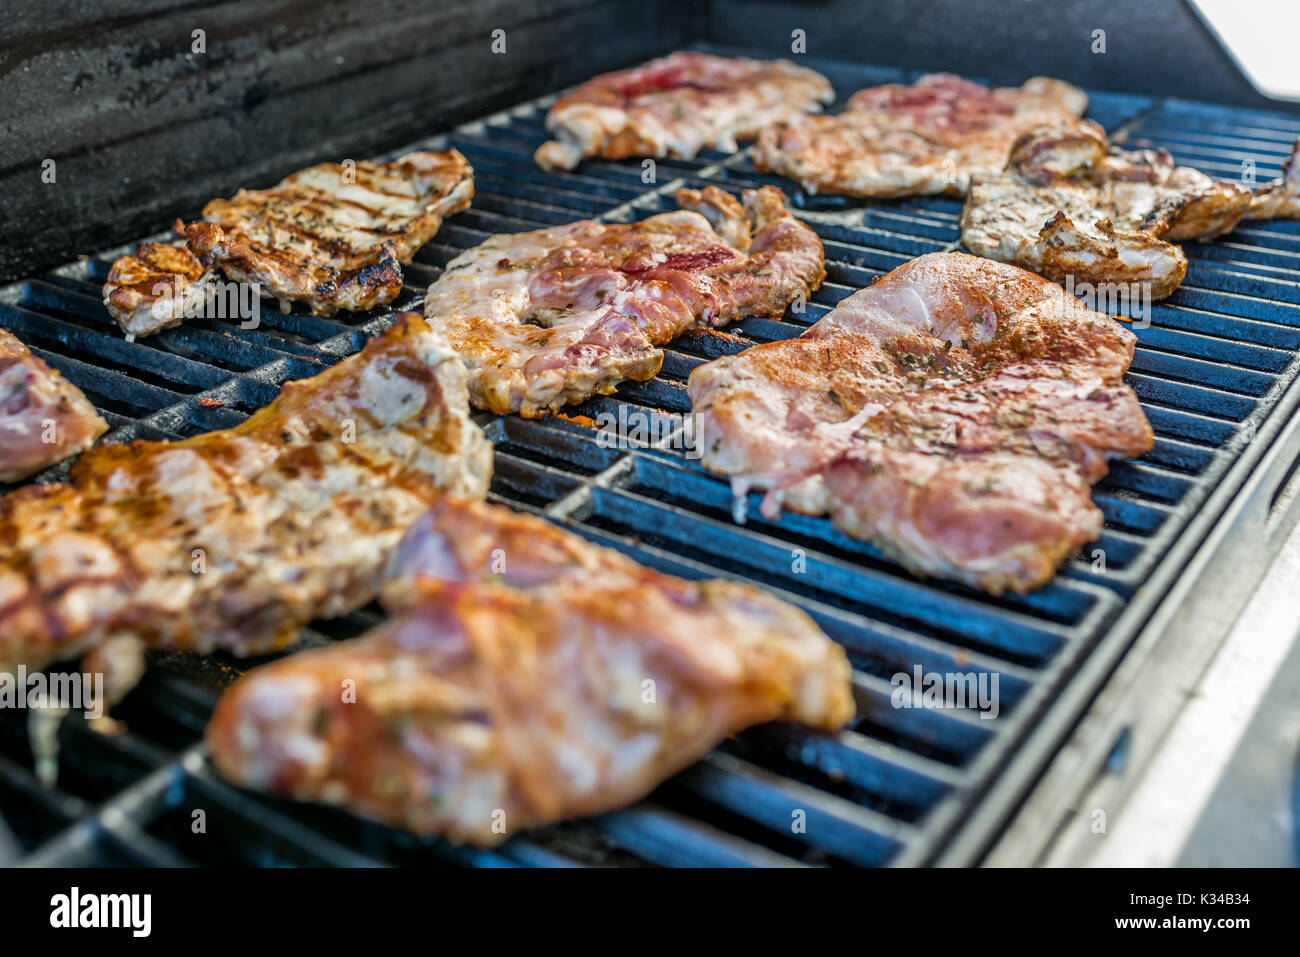 Delicious pork steaks with seasoning on the grill - Stock Image